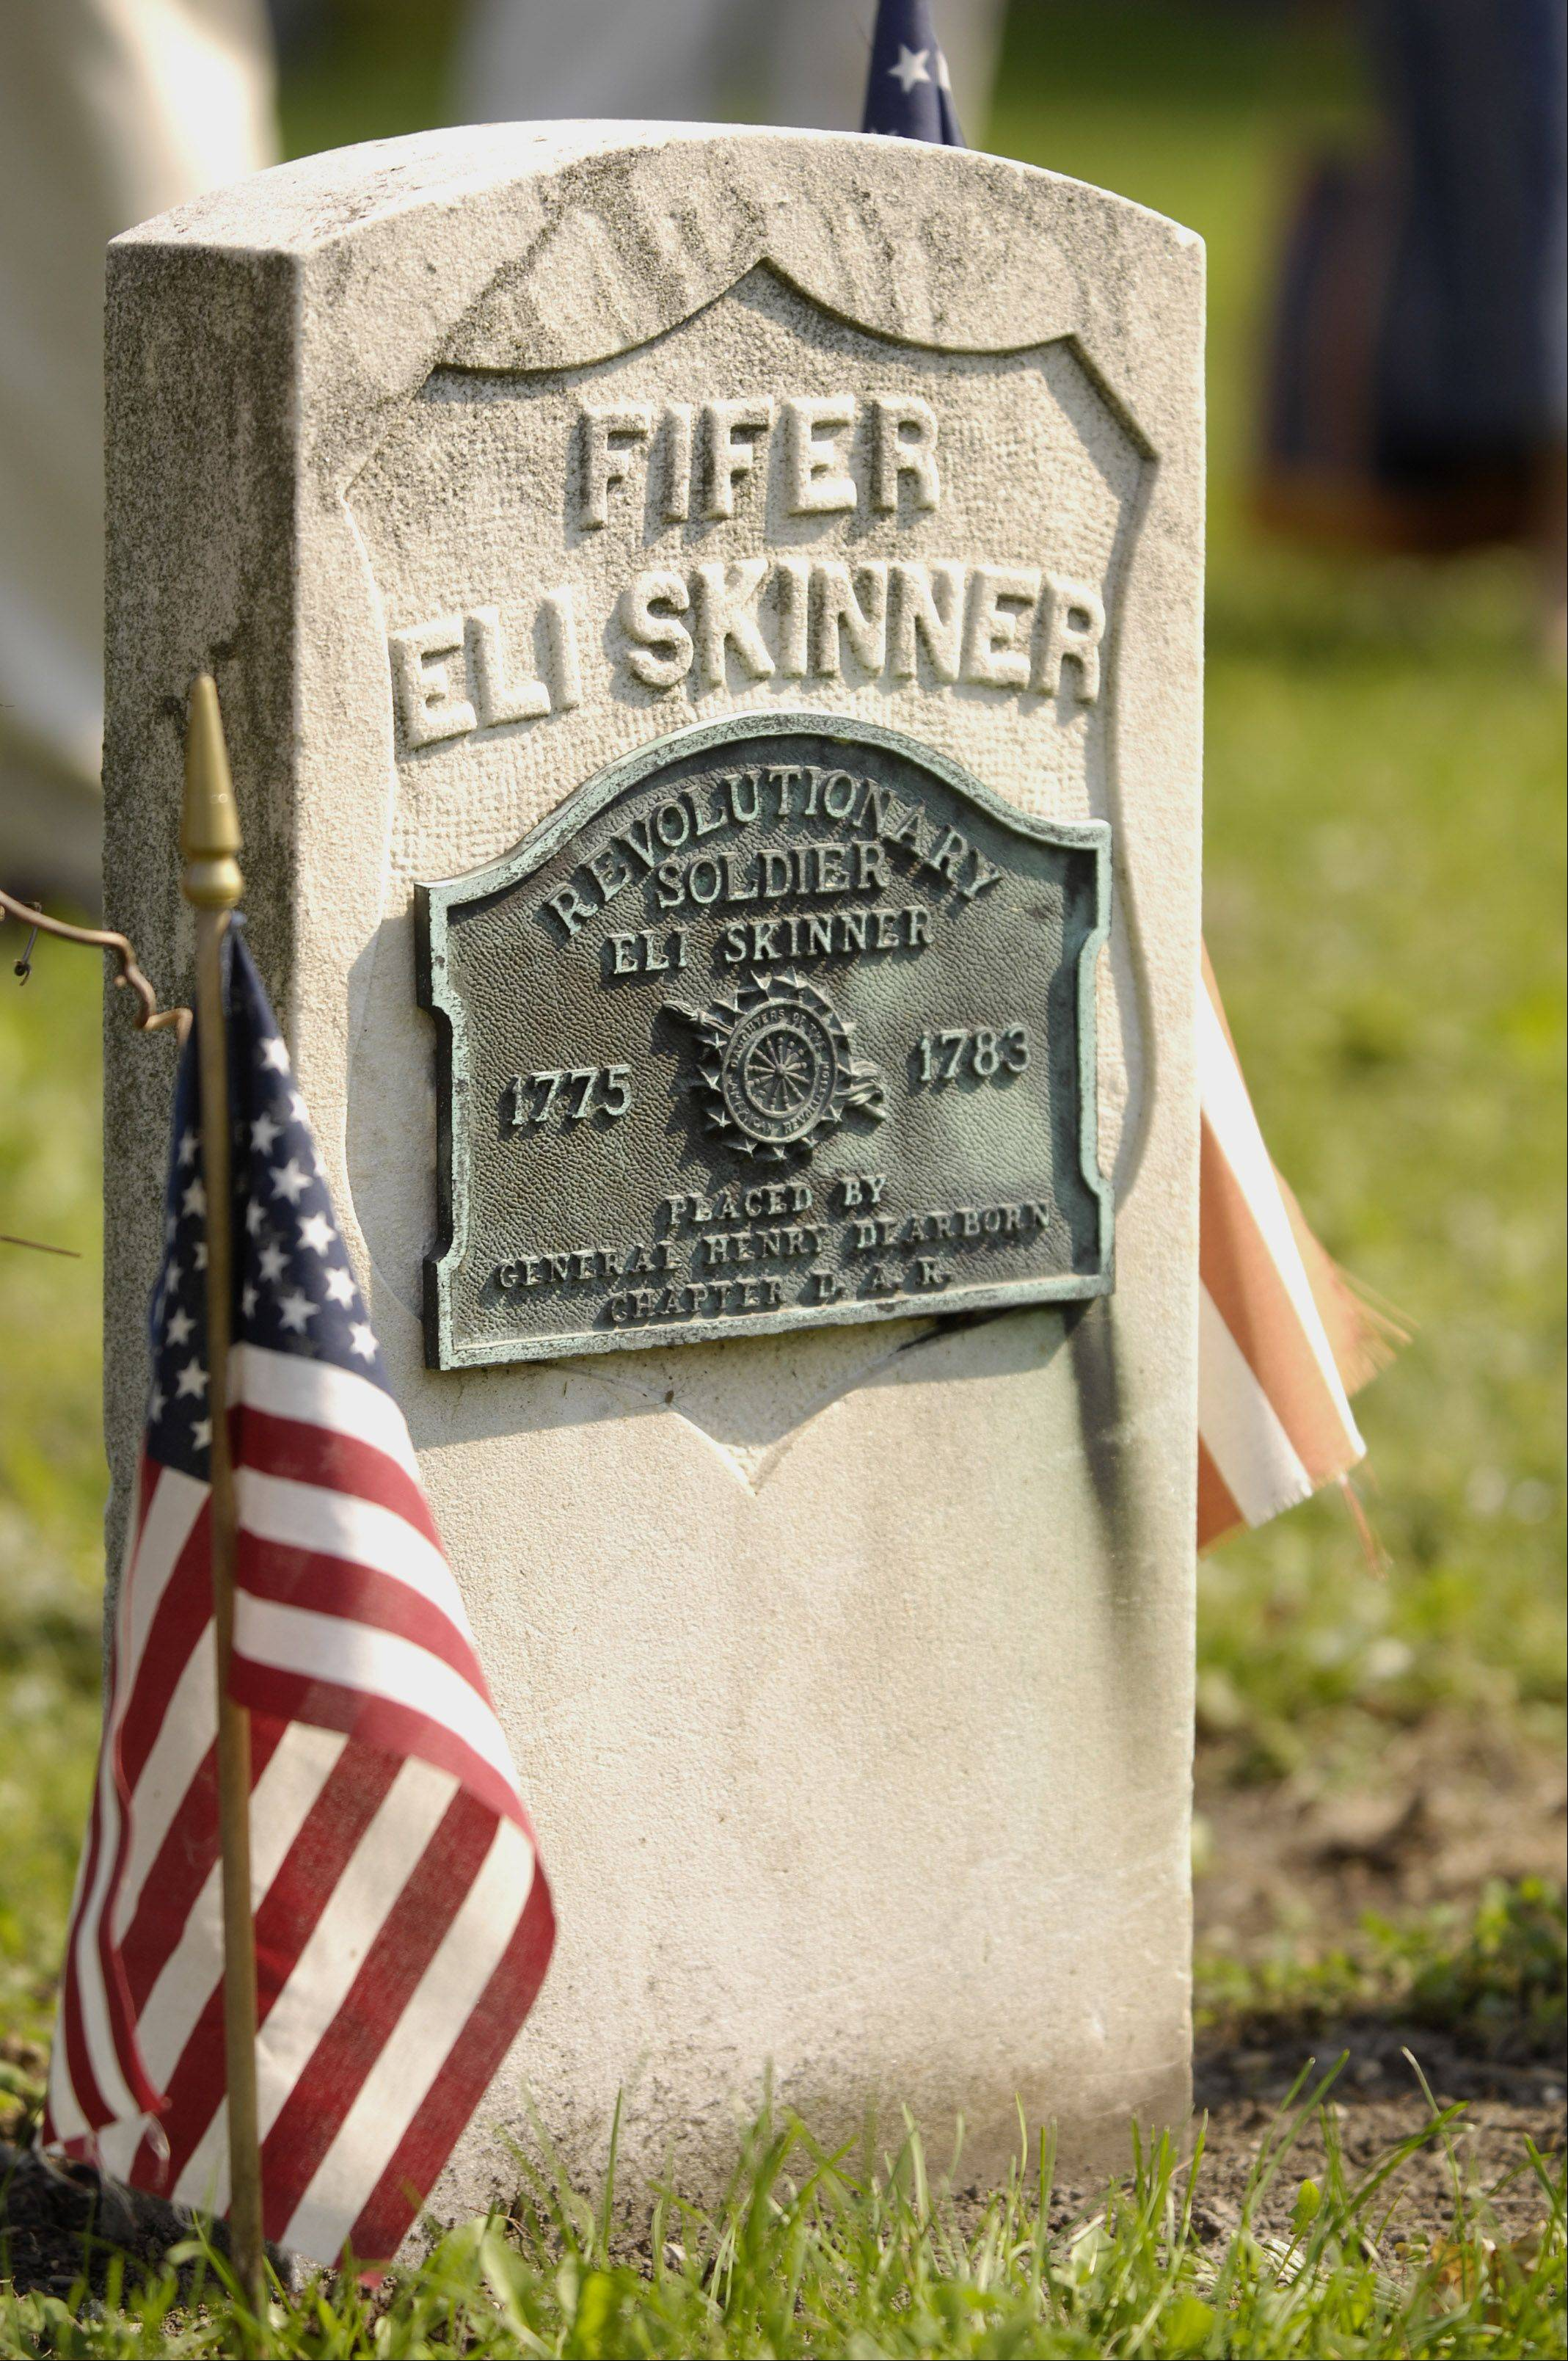 A gravestone at Elk Grove Cemetery recognizes Revolutionary War veteran Eli Skinner. The Illinois Sons of the American Revolution plan to install a historical marker at the cemetery to recognize Skinner and another Revolutionary War figure, Aaron Miner, who is also buried there.